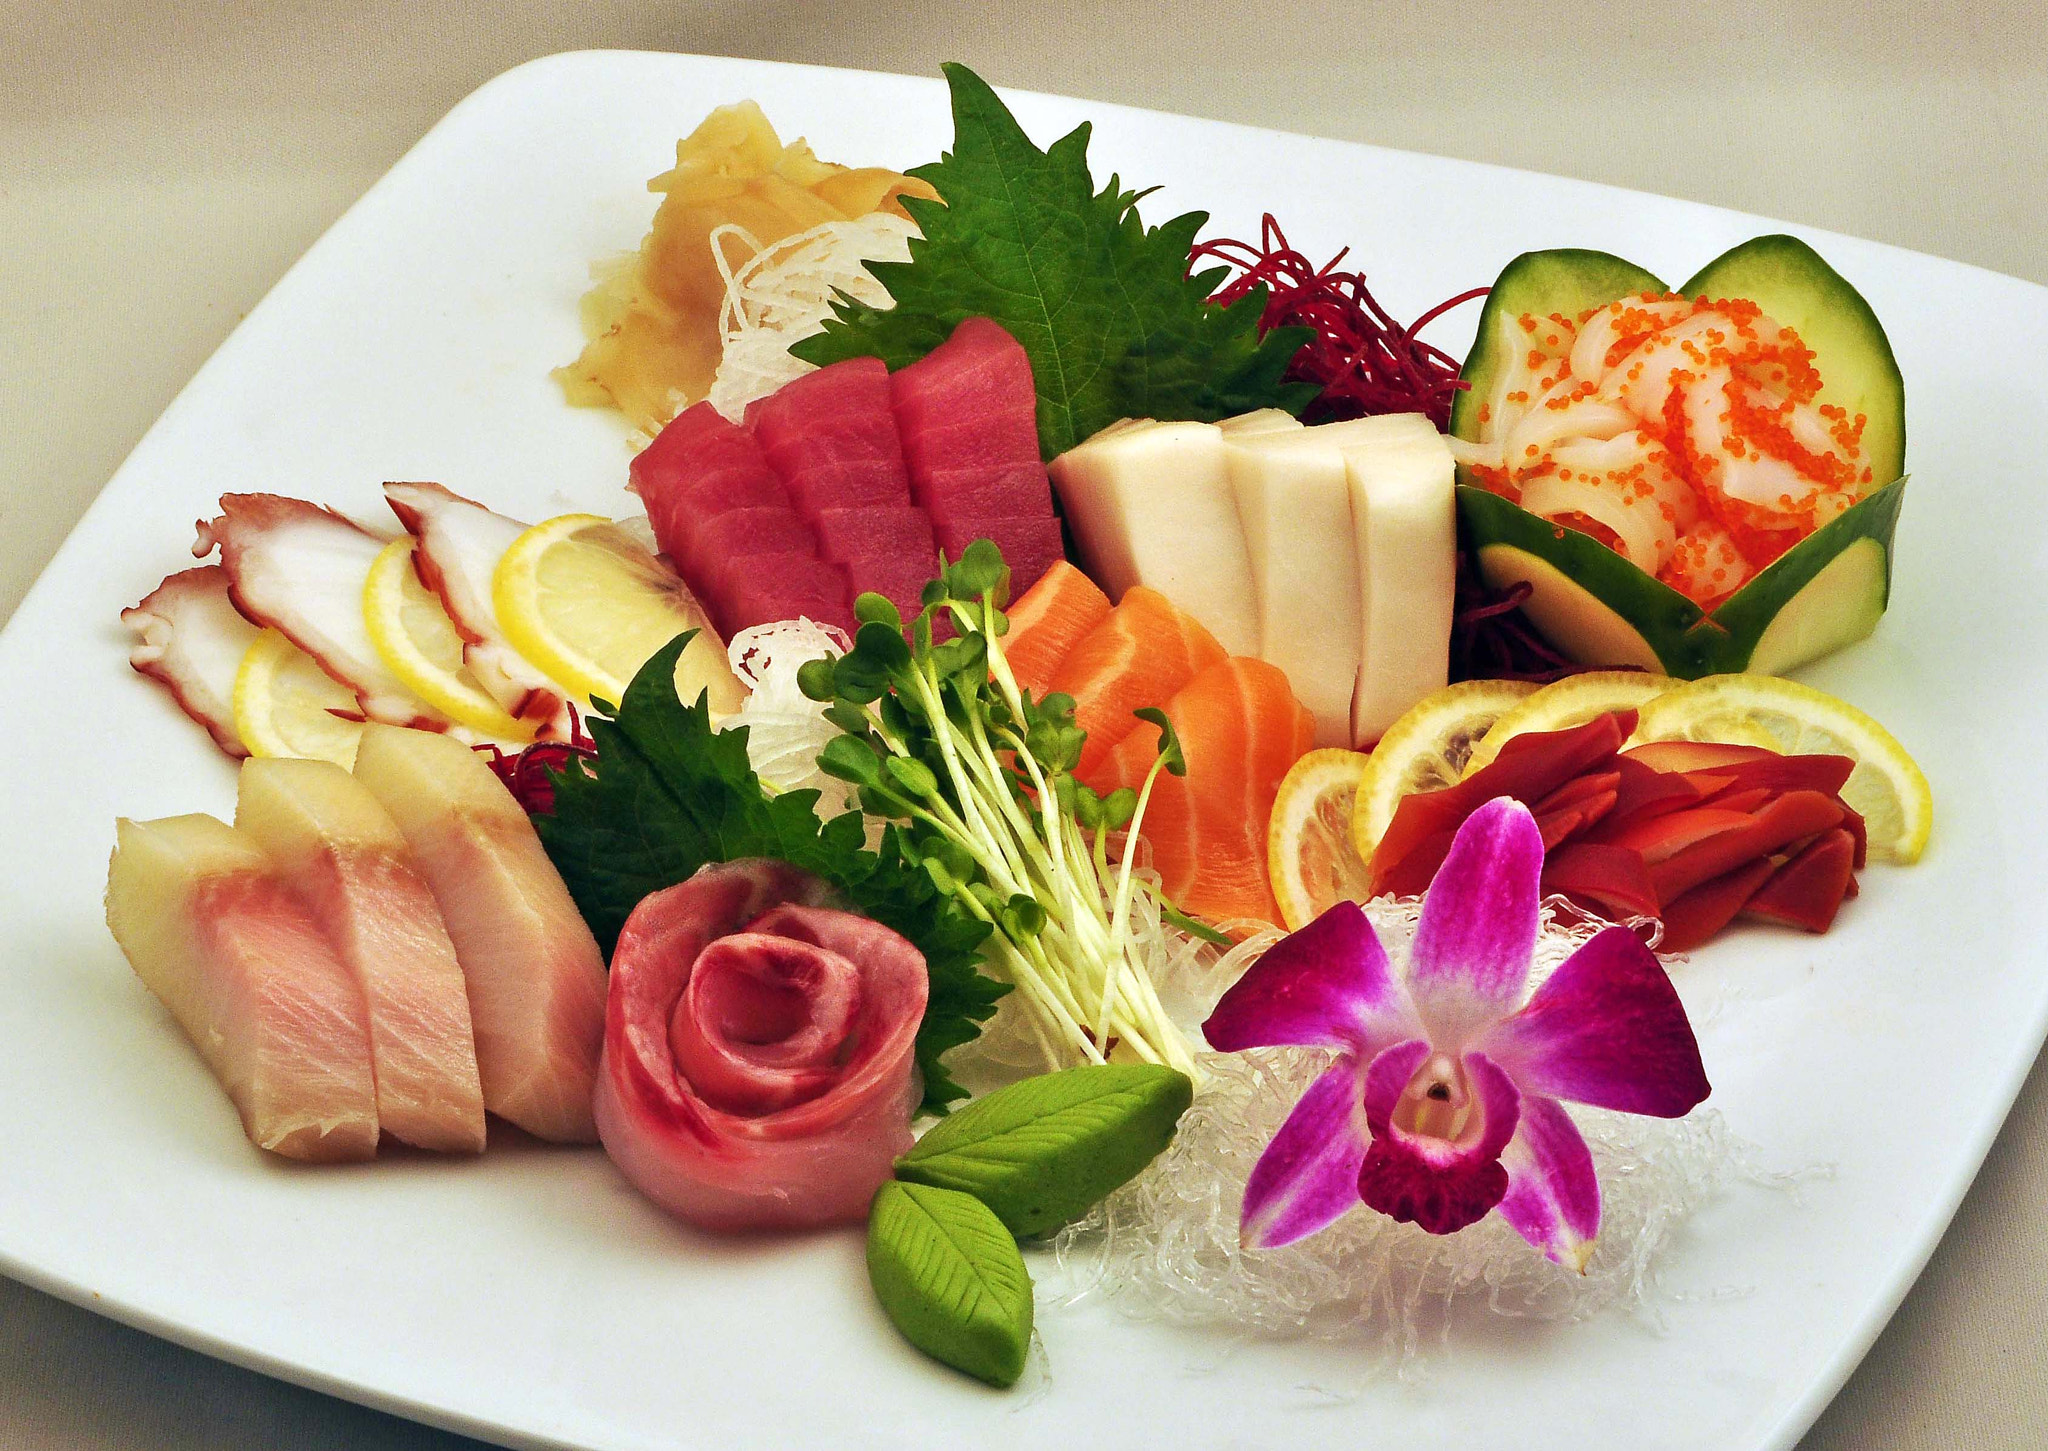 Photograph Sushi as Art by Joe Routon on 500px